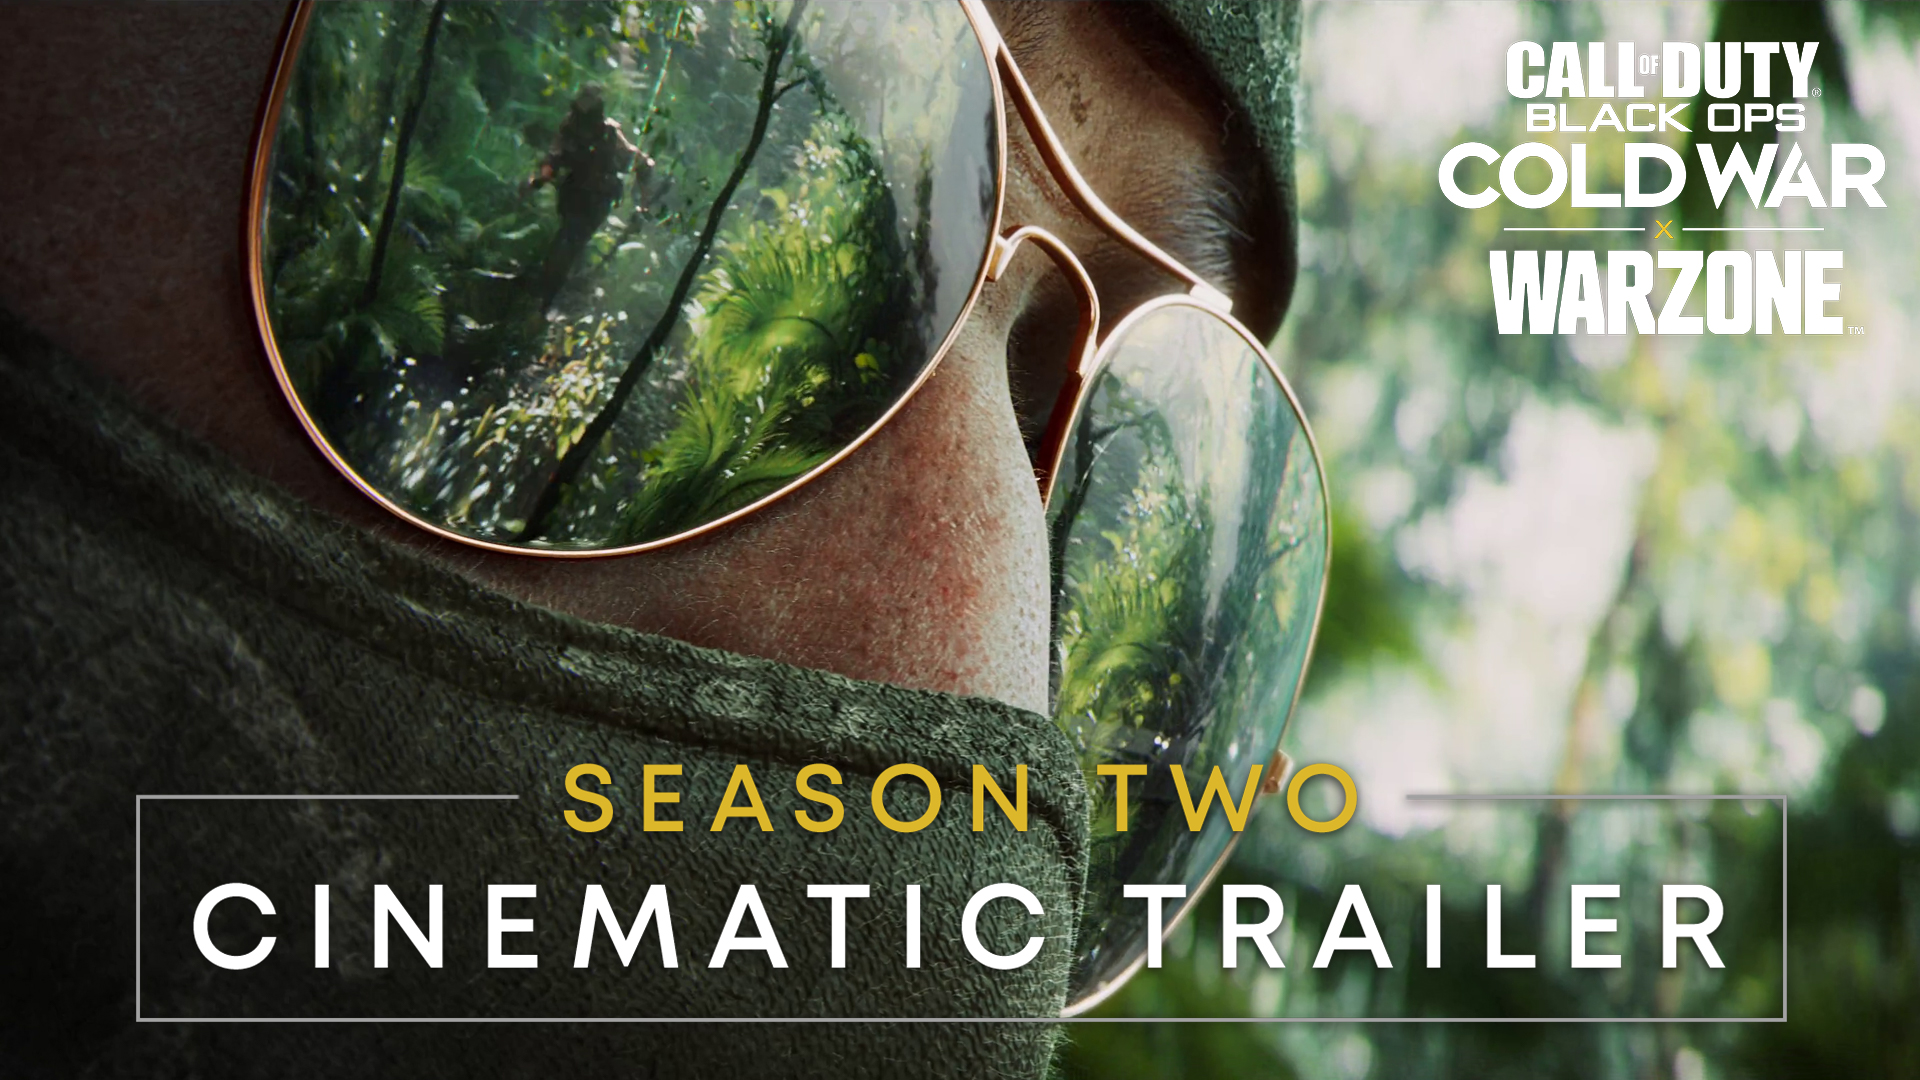 Season Two Cinematic Trailer – Call of Duty: Black Ops Cold War & Warzone